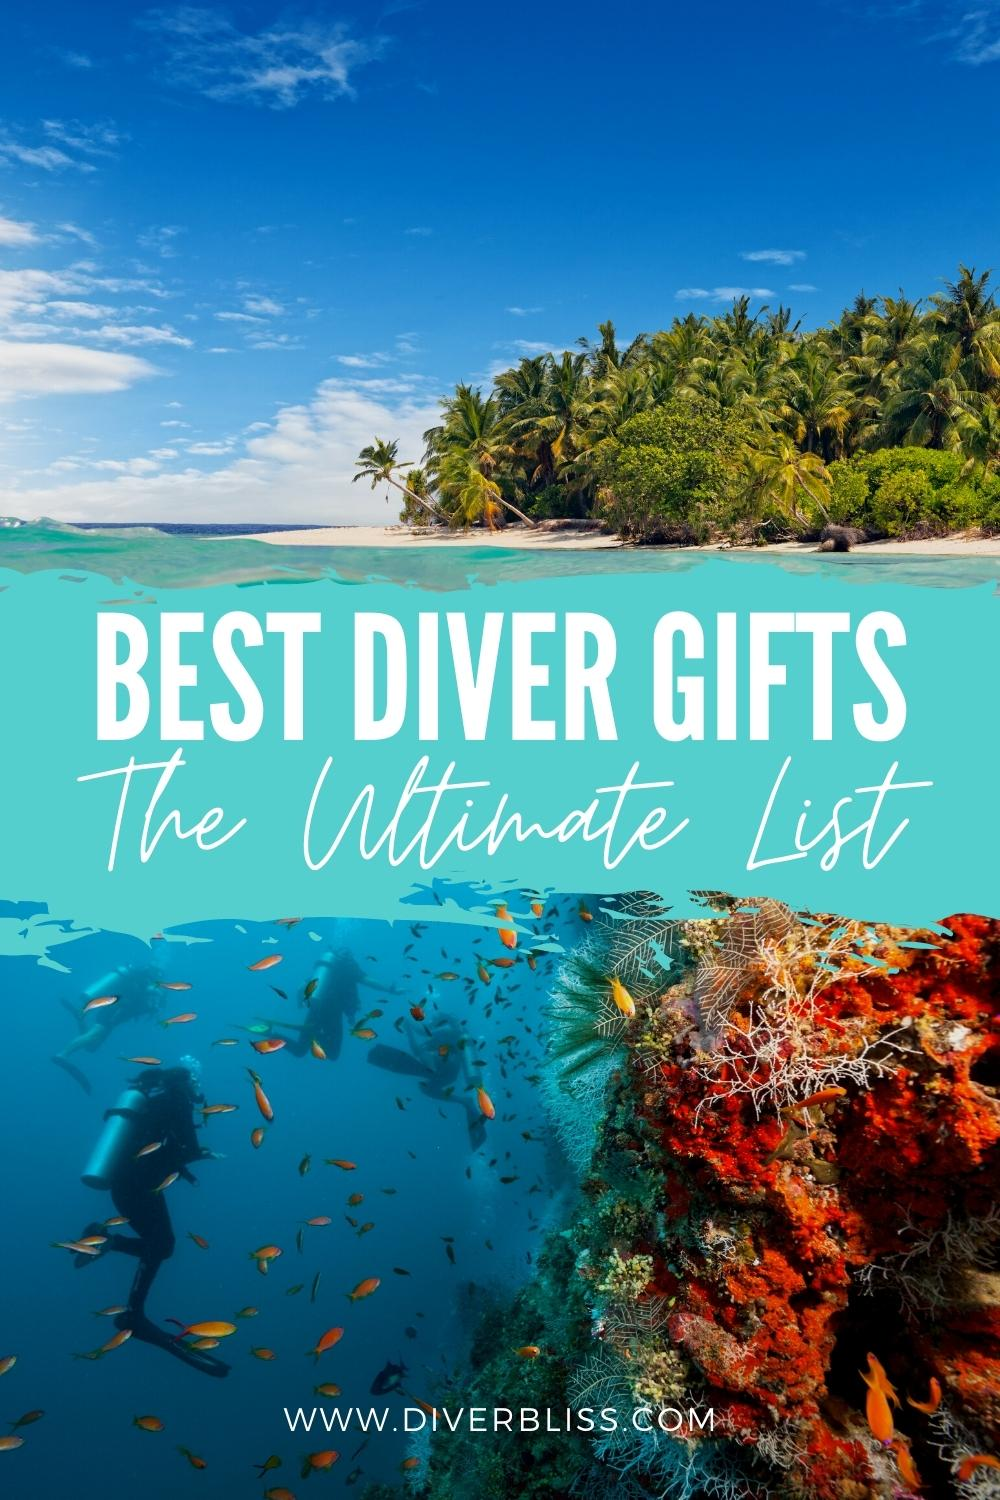 The Ultimate List of Best Diver Gifts